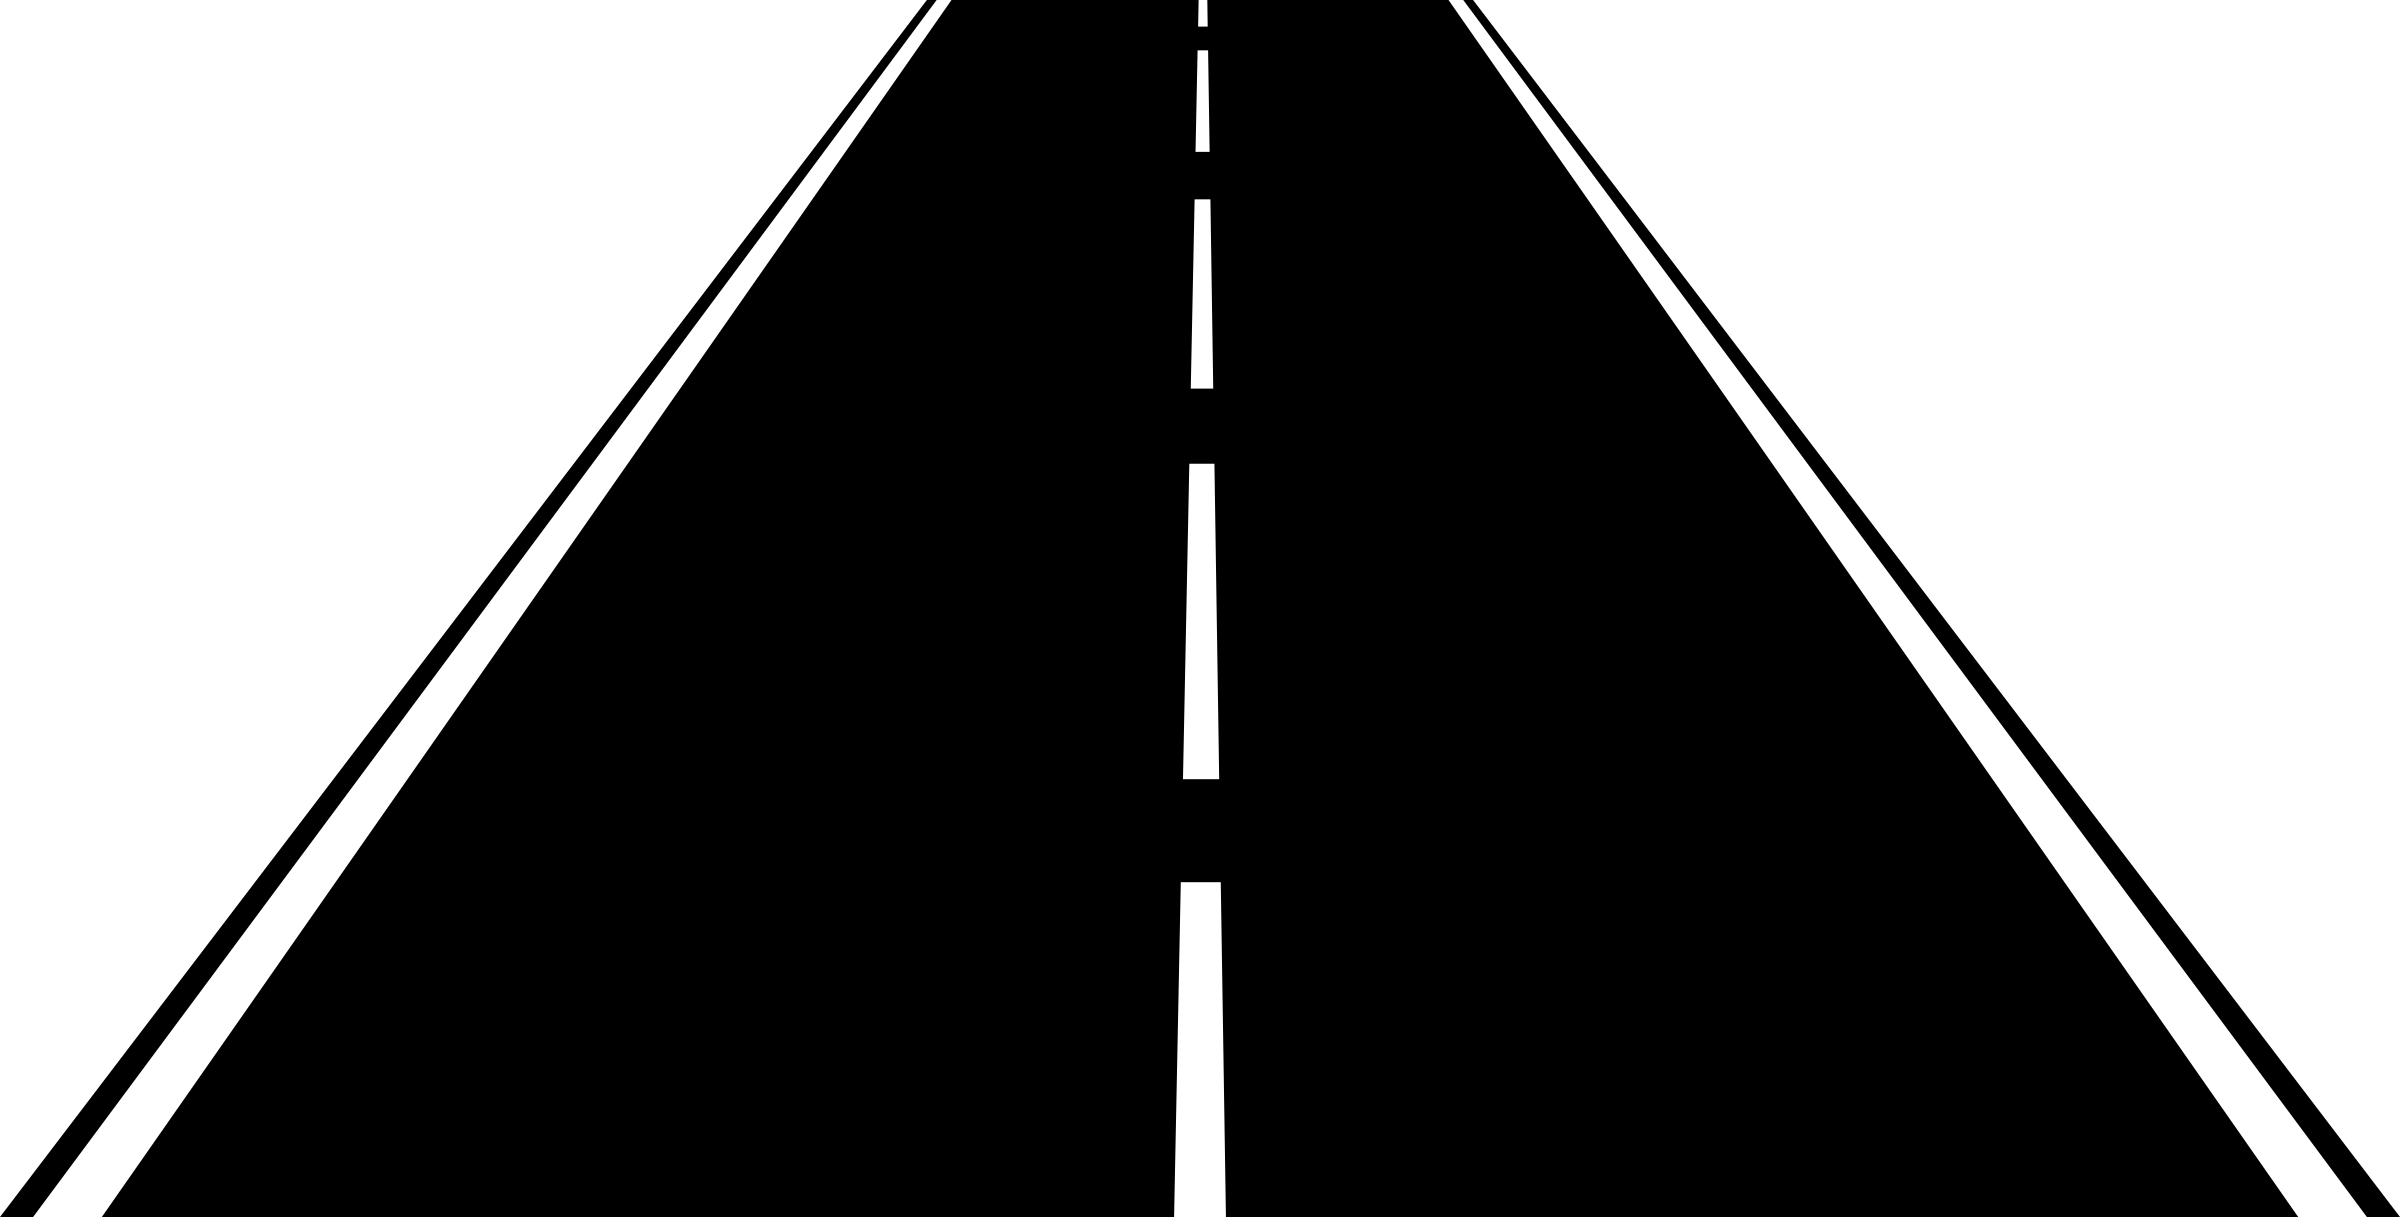 horizontal road clipart png - Clipground